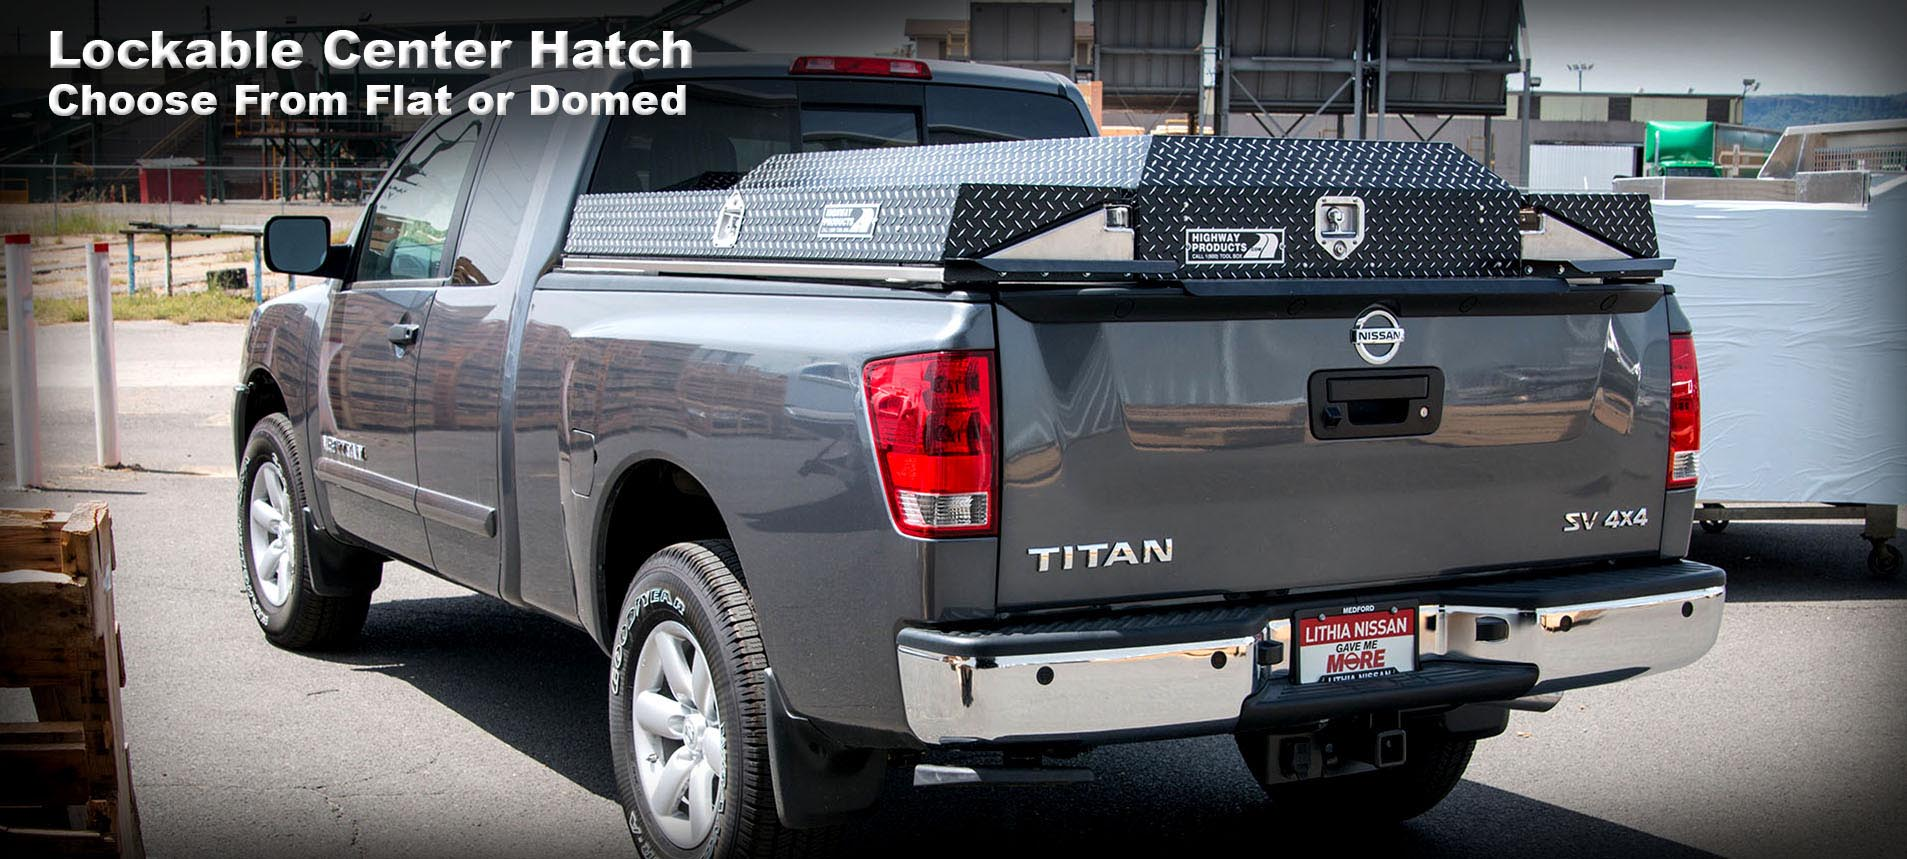 Highway Products Pickup Packs come with a lockable center hatch. Choose from 2 different styles: flat or domed